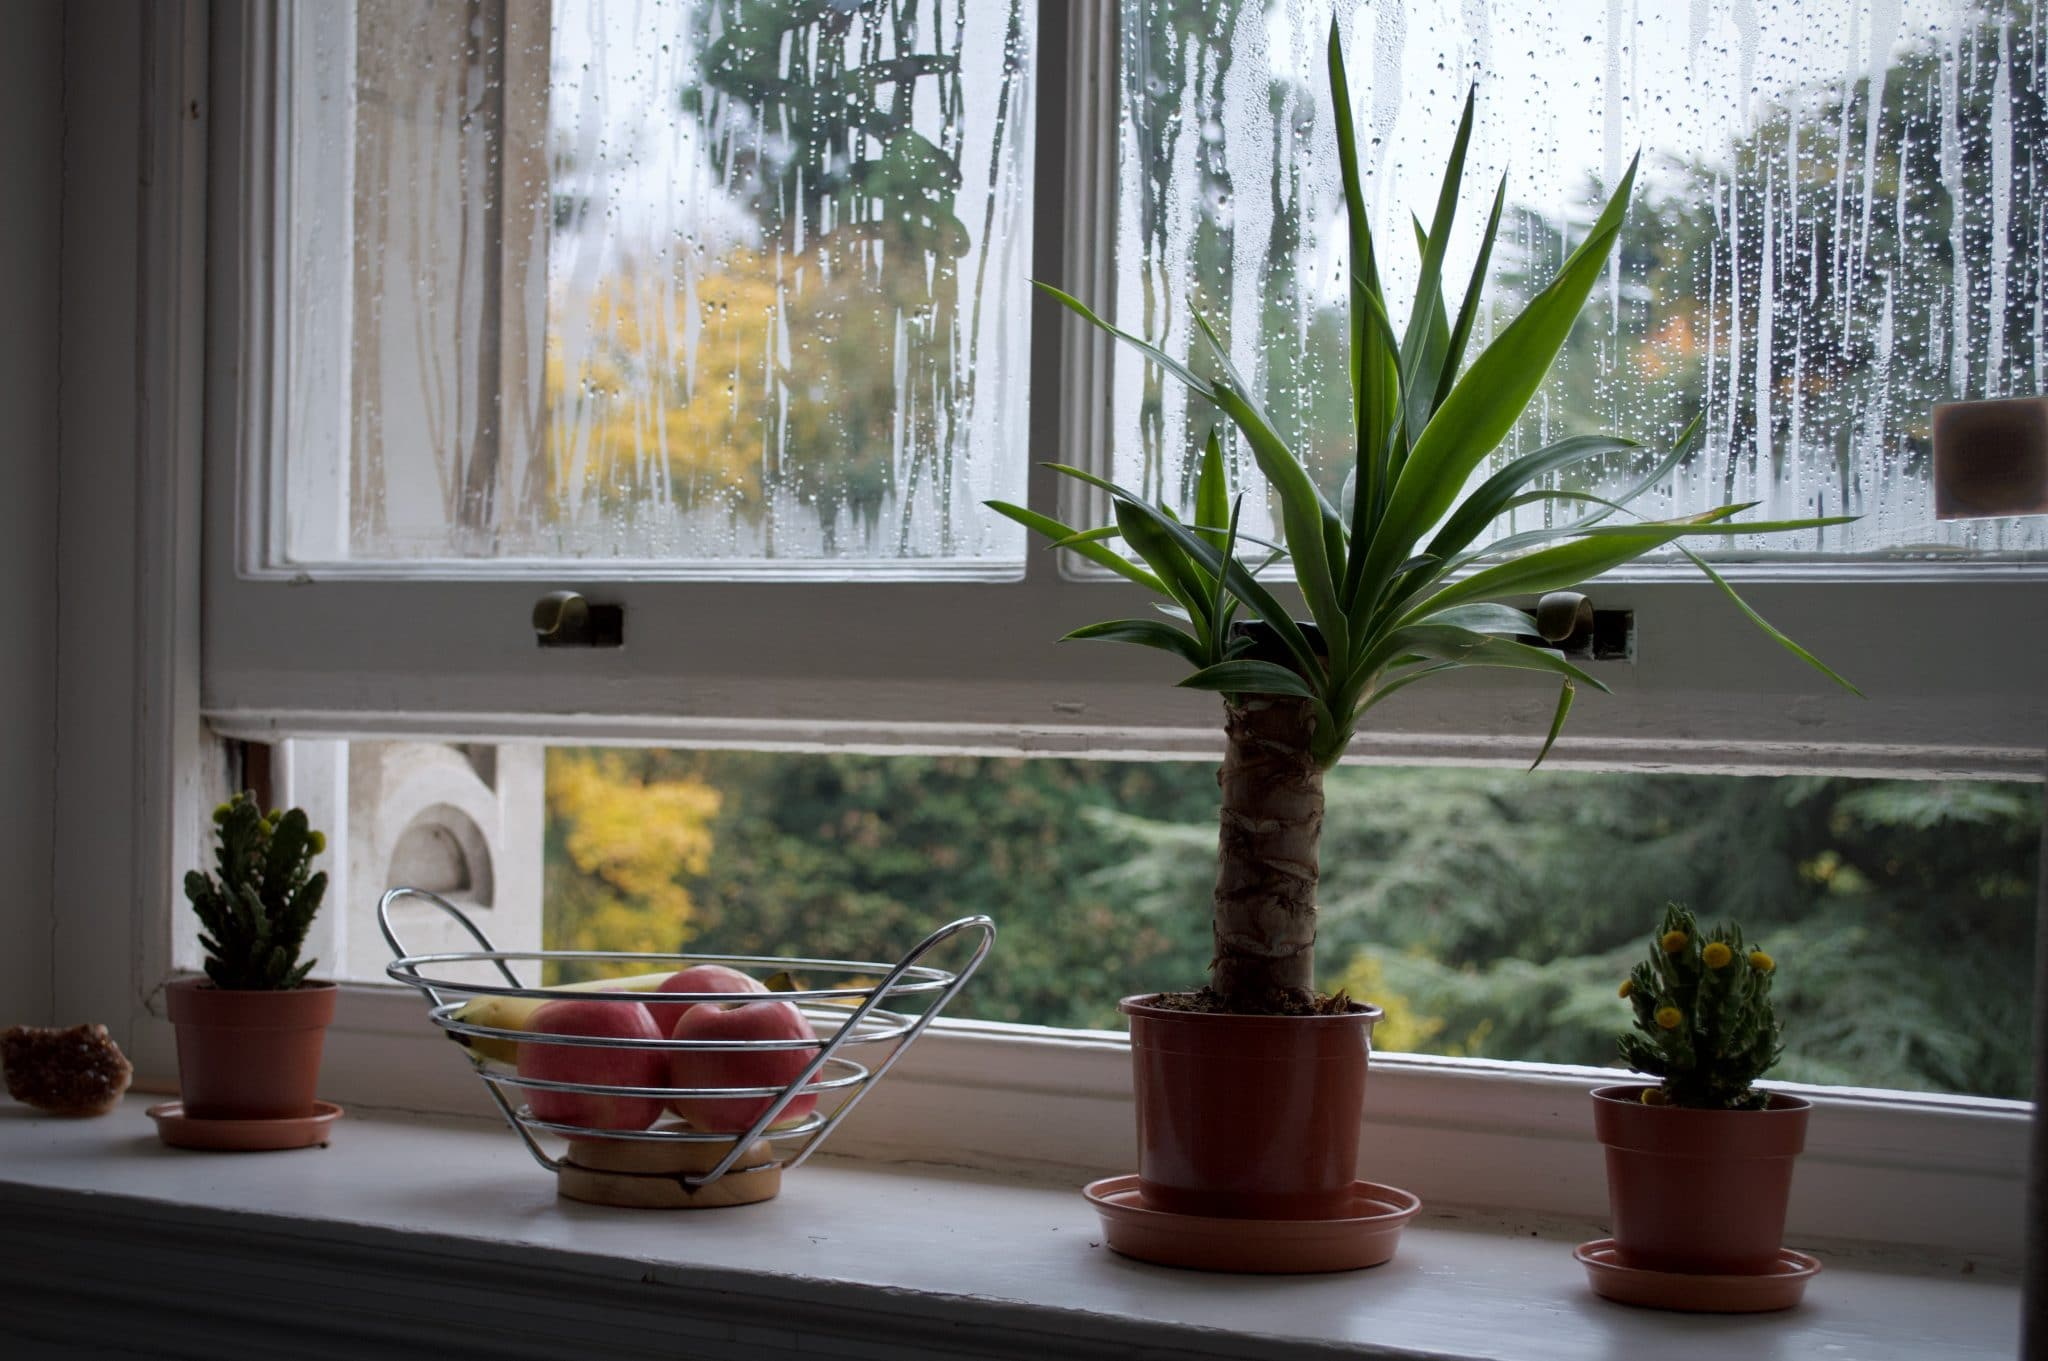 Open-kitchen-window-with-plants